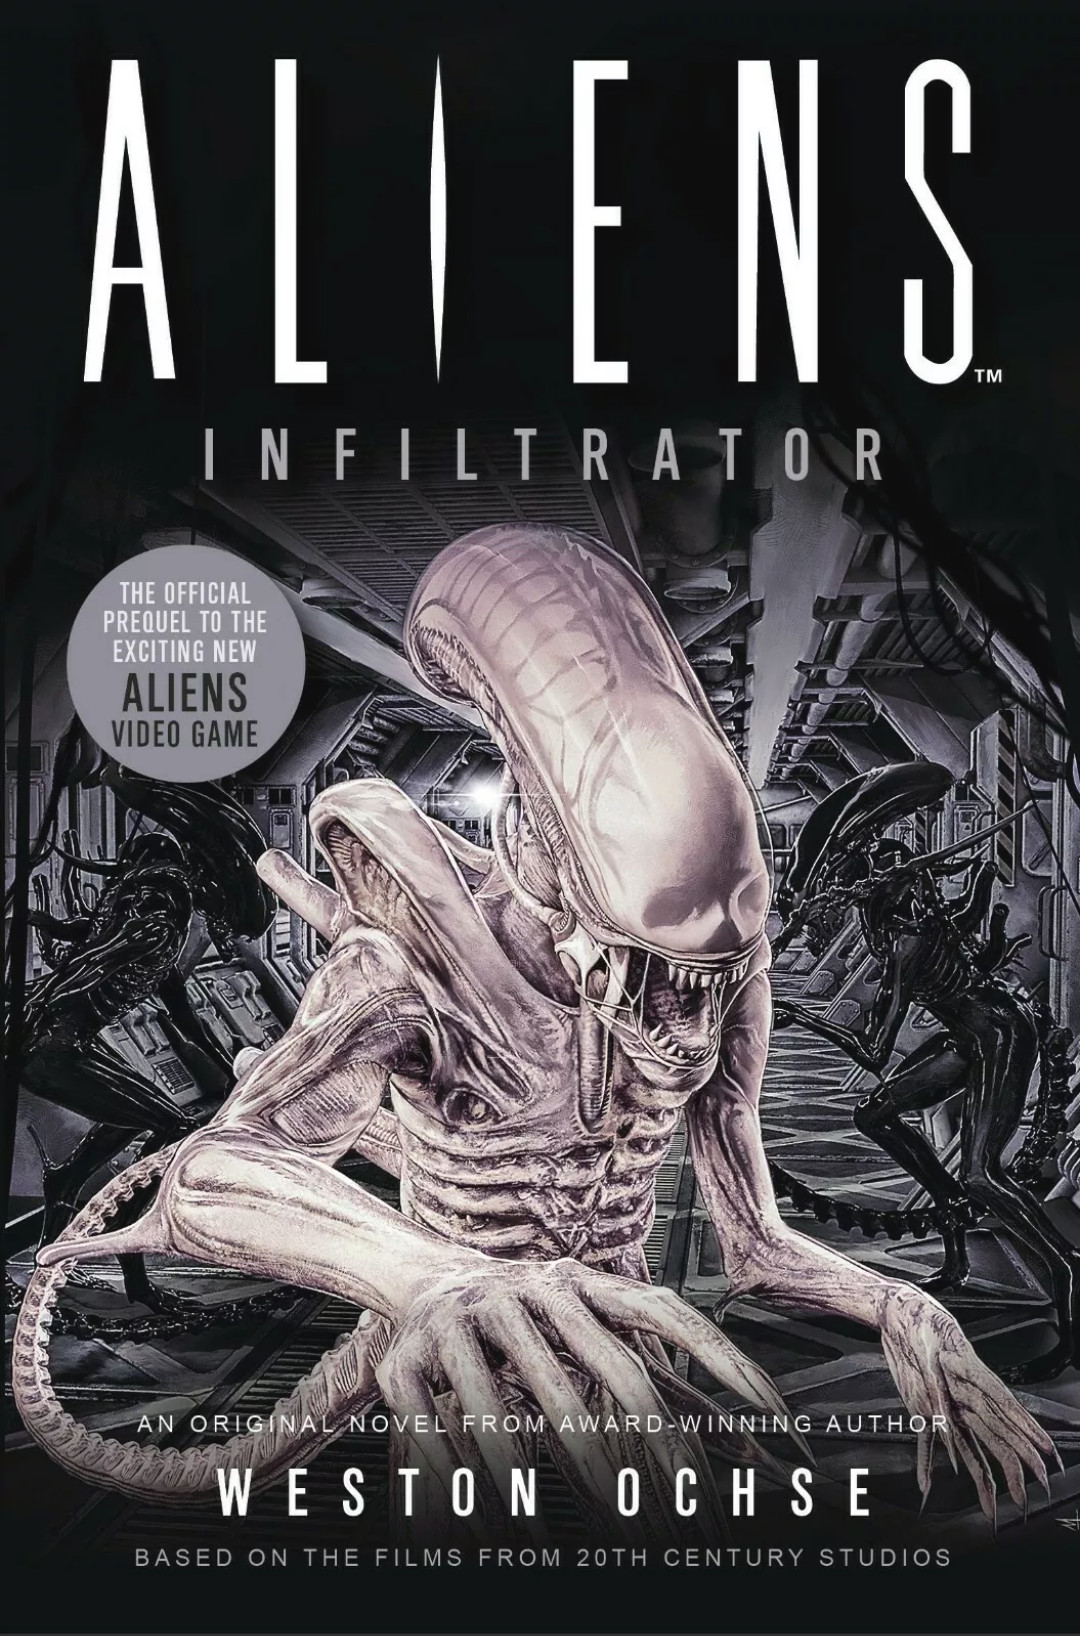 The cover of Weston Ochse's Aliens: Infiltrator, with a pale white Xenomorph against a monochrome background featuring other Xenomorphs.